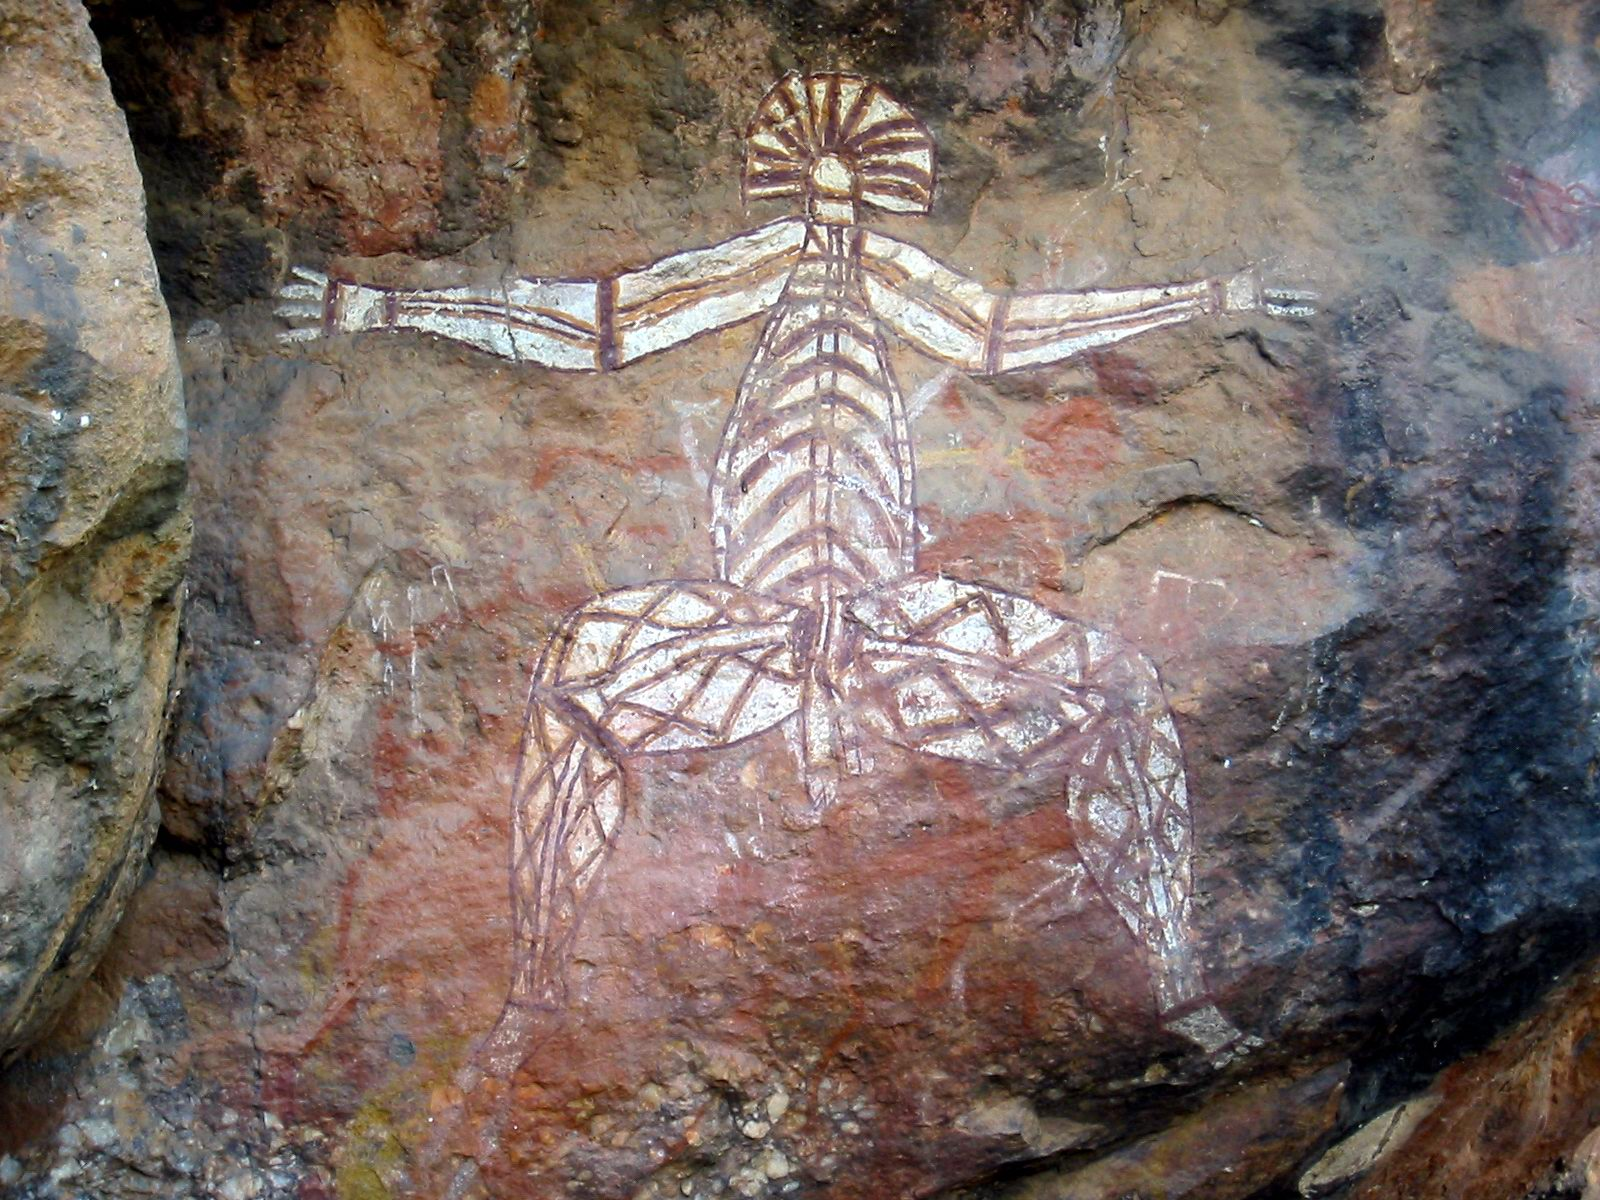 Download this Descripci Aboriginal Art Australia picture